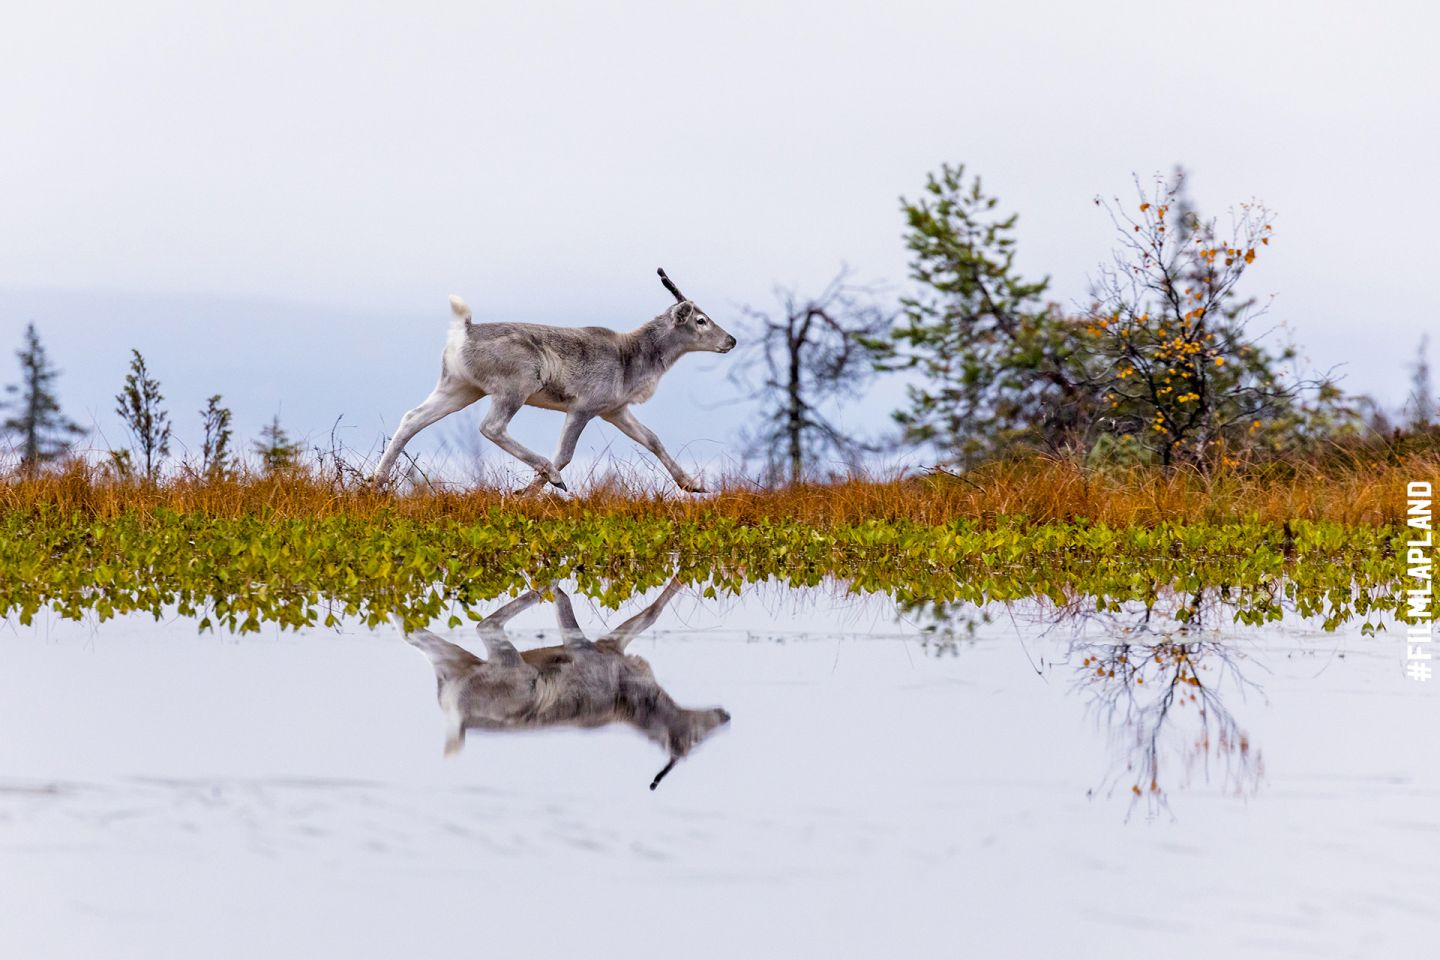 Reflection of reindeer in lake in Posio, Finland in autumn